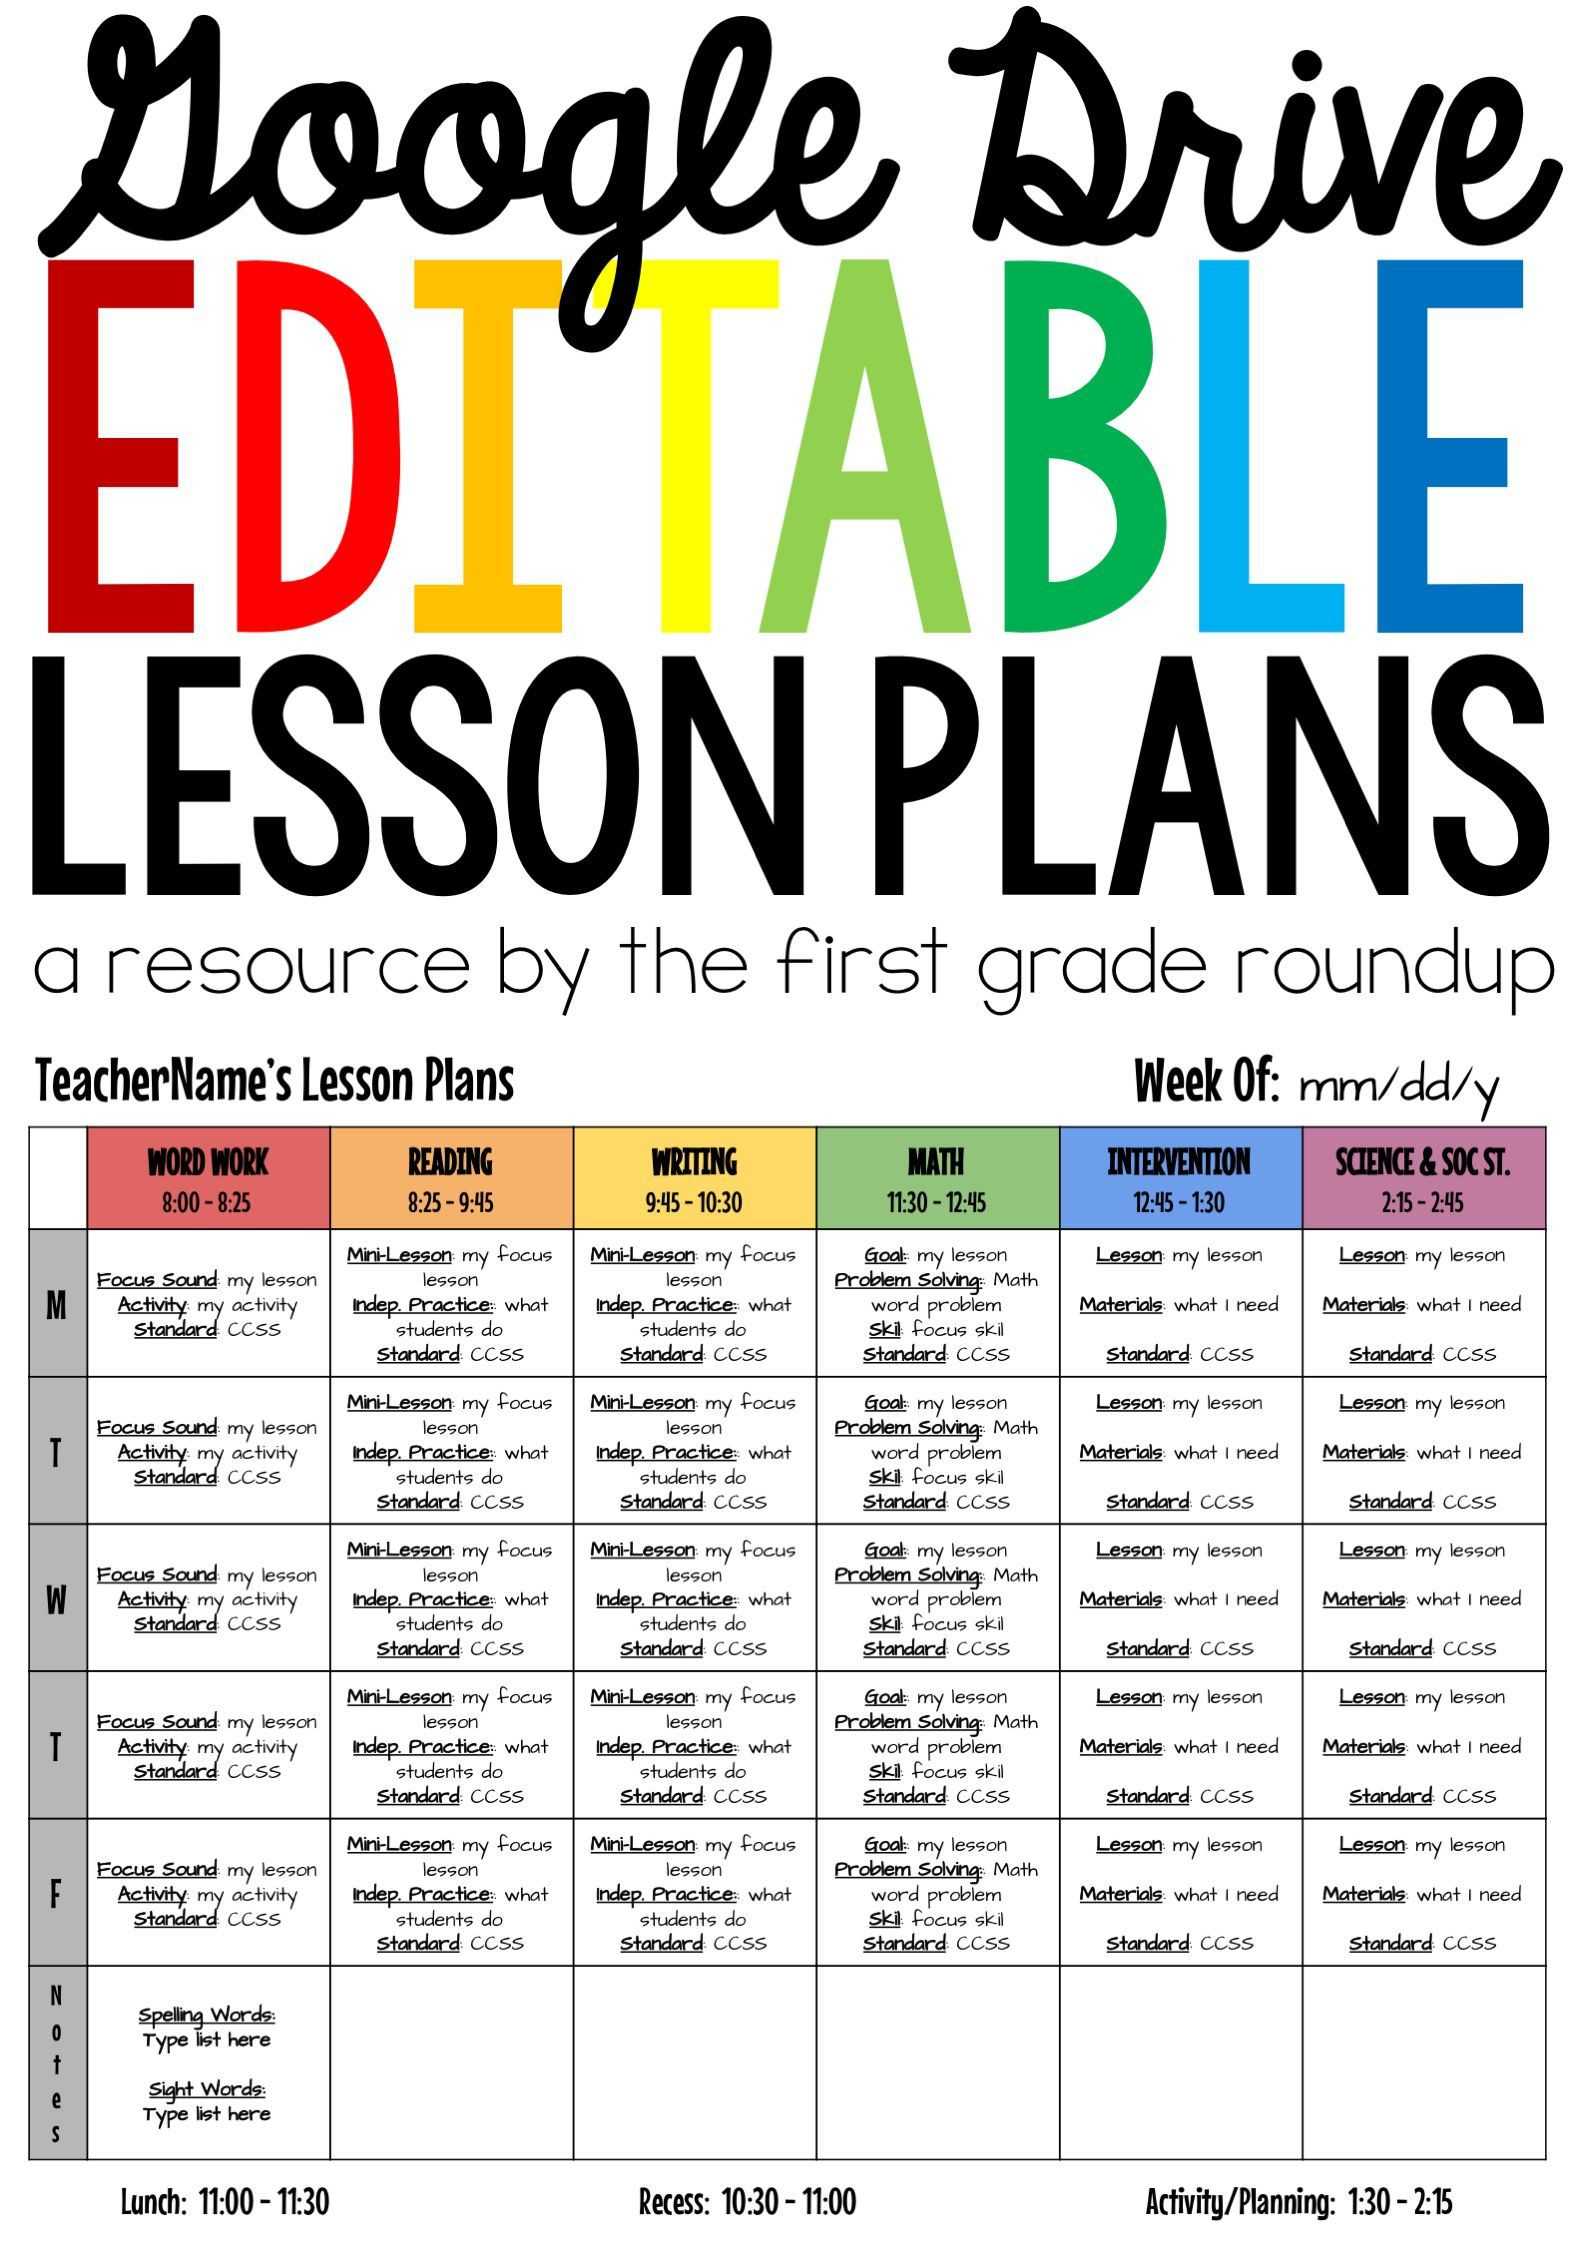 004 Dreaded Free Weekly Lesson Plan Template Google Doc High Definition Full